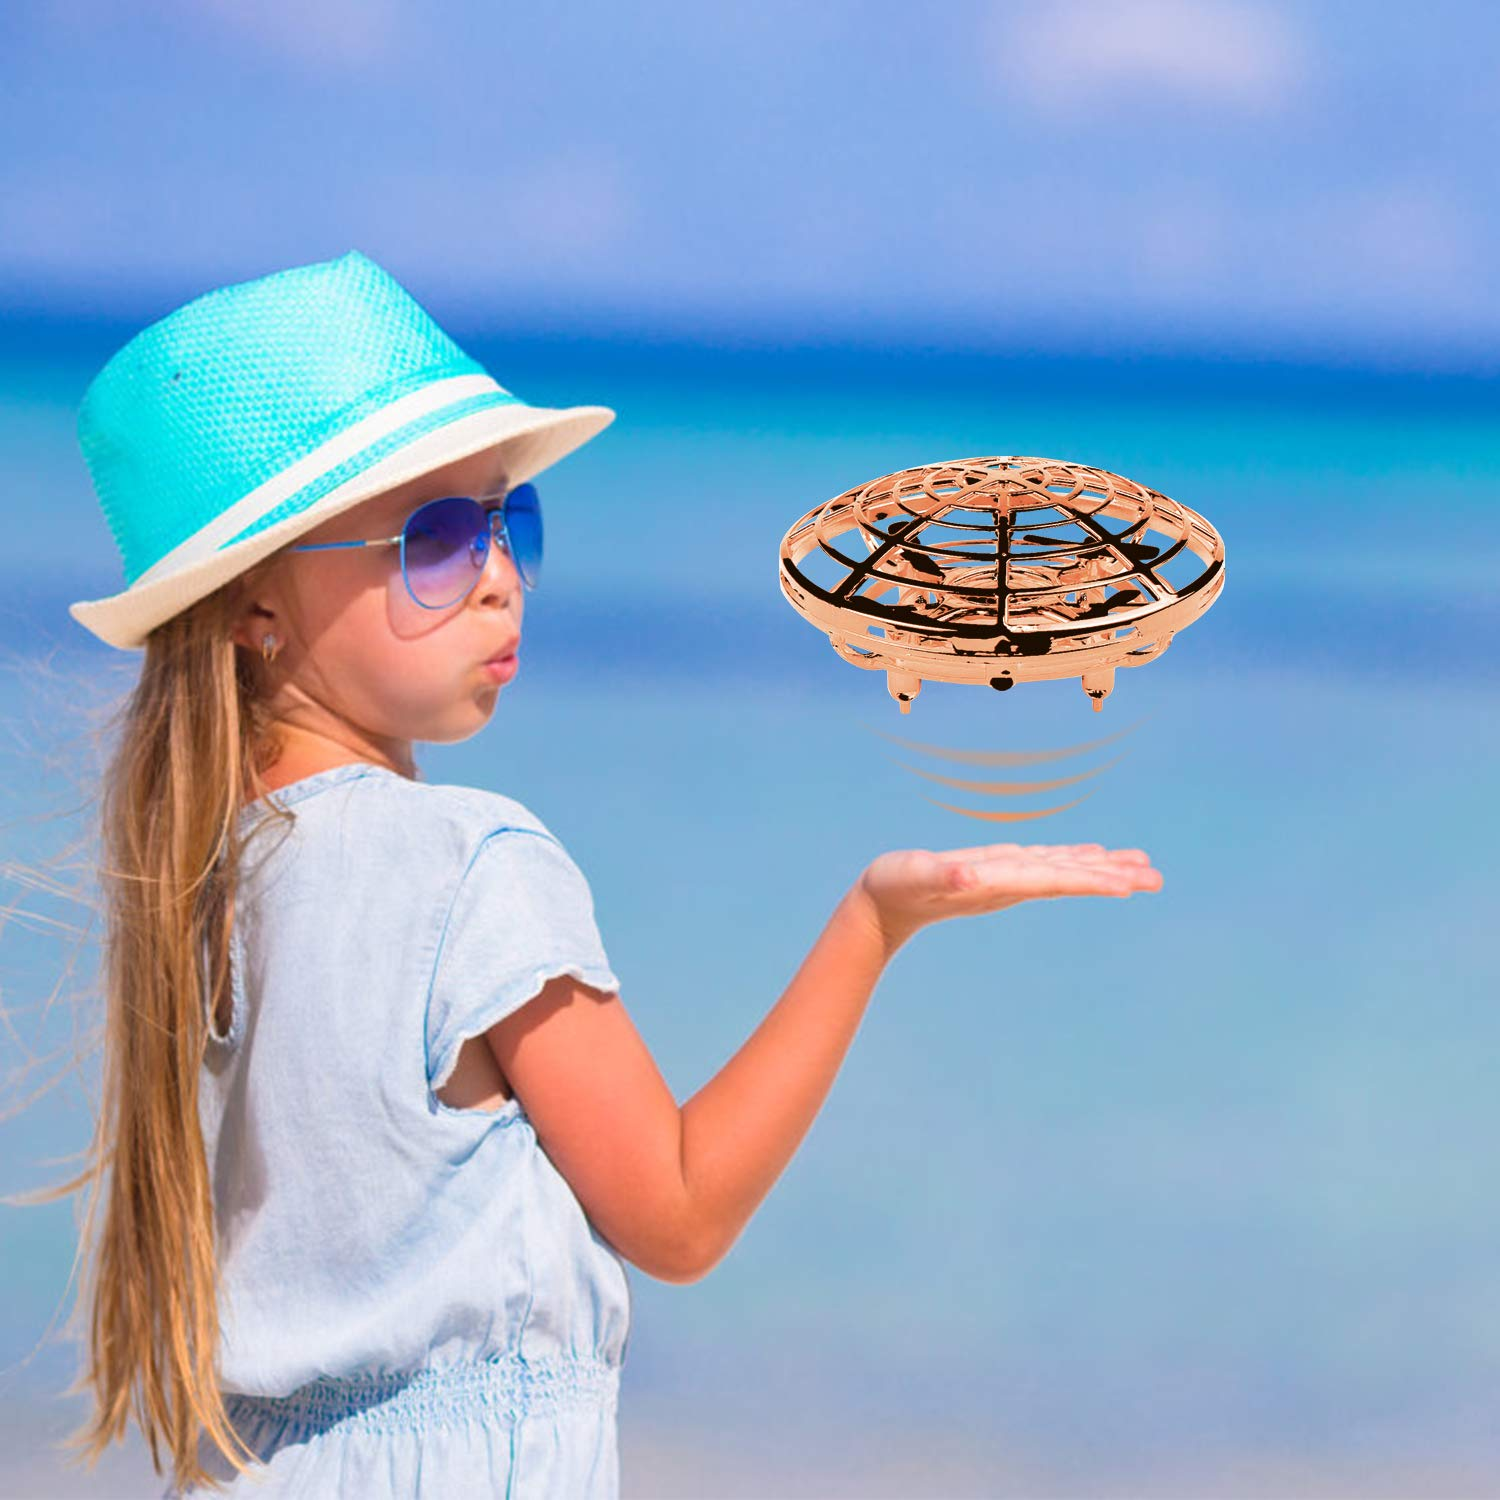 Ferbon Hand Control Flying Ball Mini Drone Helicopter with Interactive Infrared Induction, Fly Toys for Boys & Girls, for Kids (Gold) by Ferbon (Image #3)